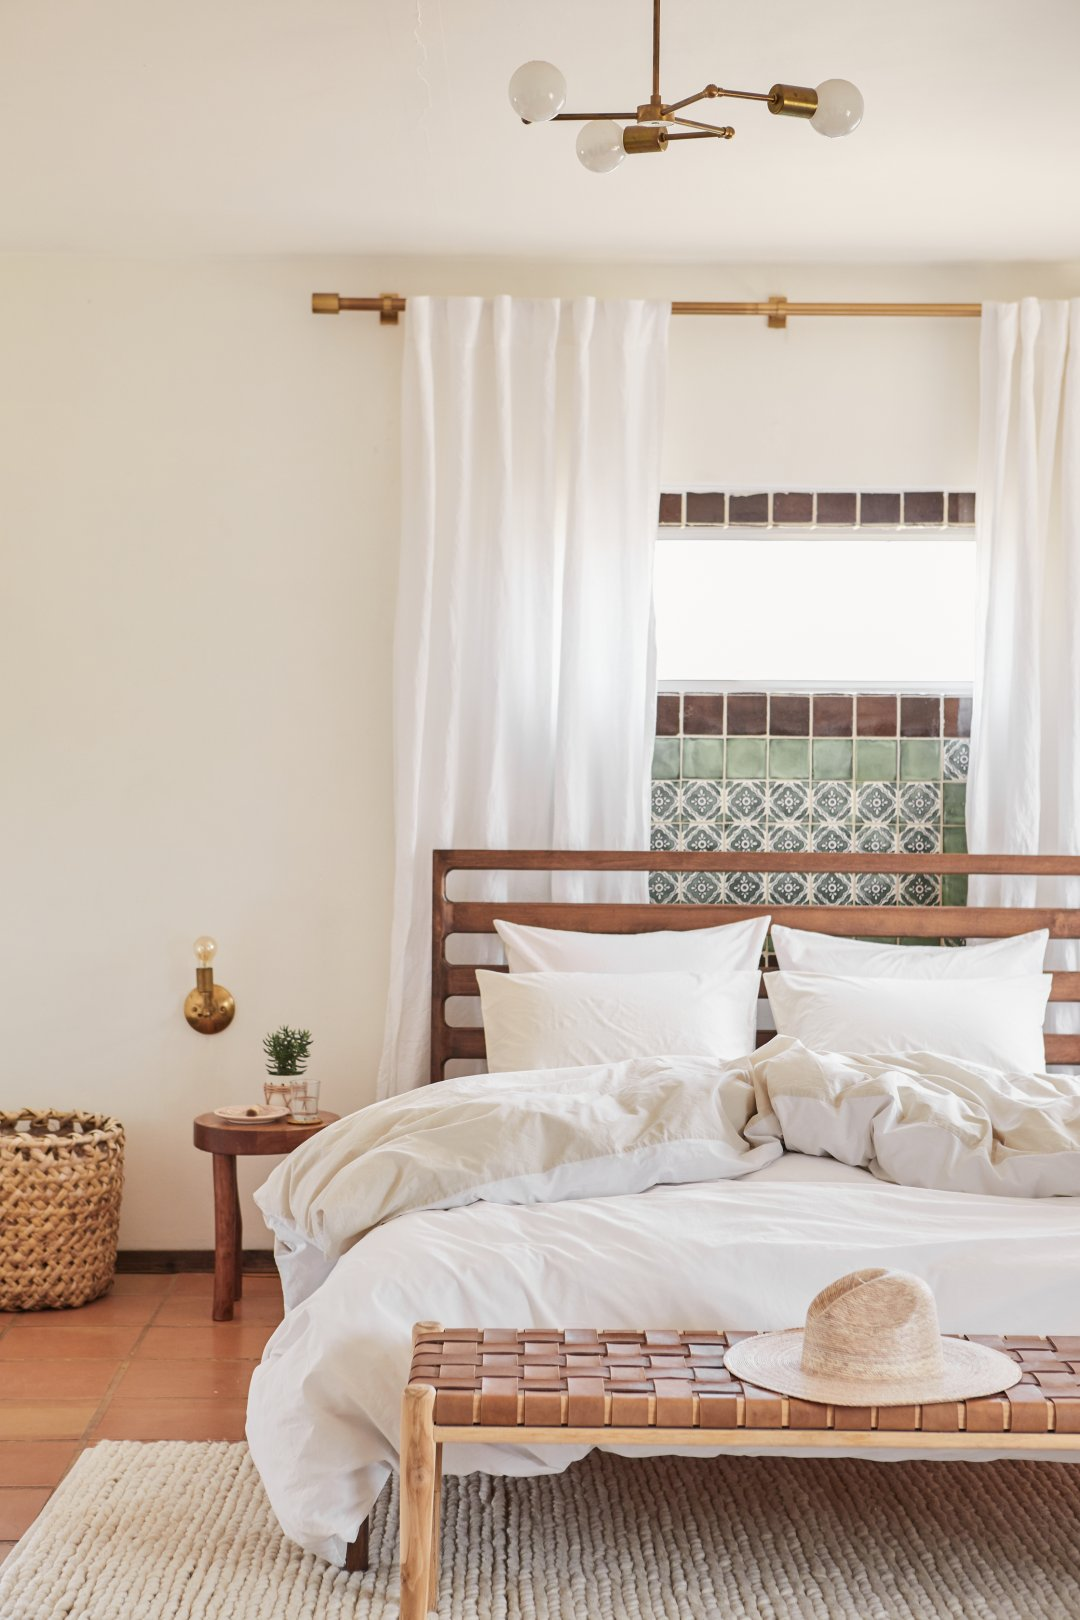 Shop Customize Product Draperies, Brushed Cotton Venice Set, Braided Wool Rug, Handmade Wood Bed Frame, Nova L Sconce, Overstock.com: Online Shopping - Bedding, Furniture, Electronics, Jewelry, Clothing & more and more